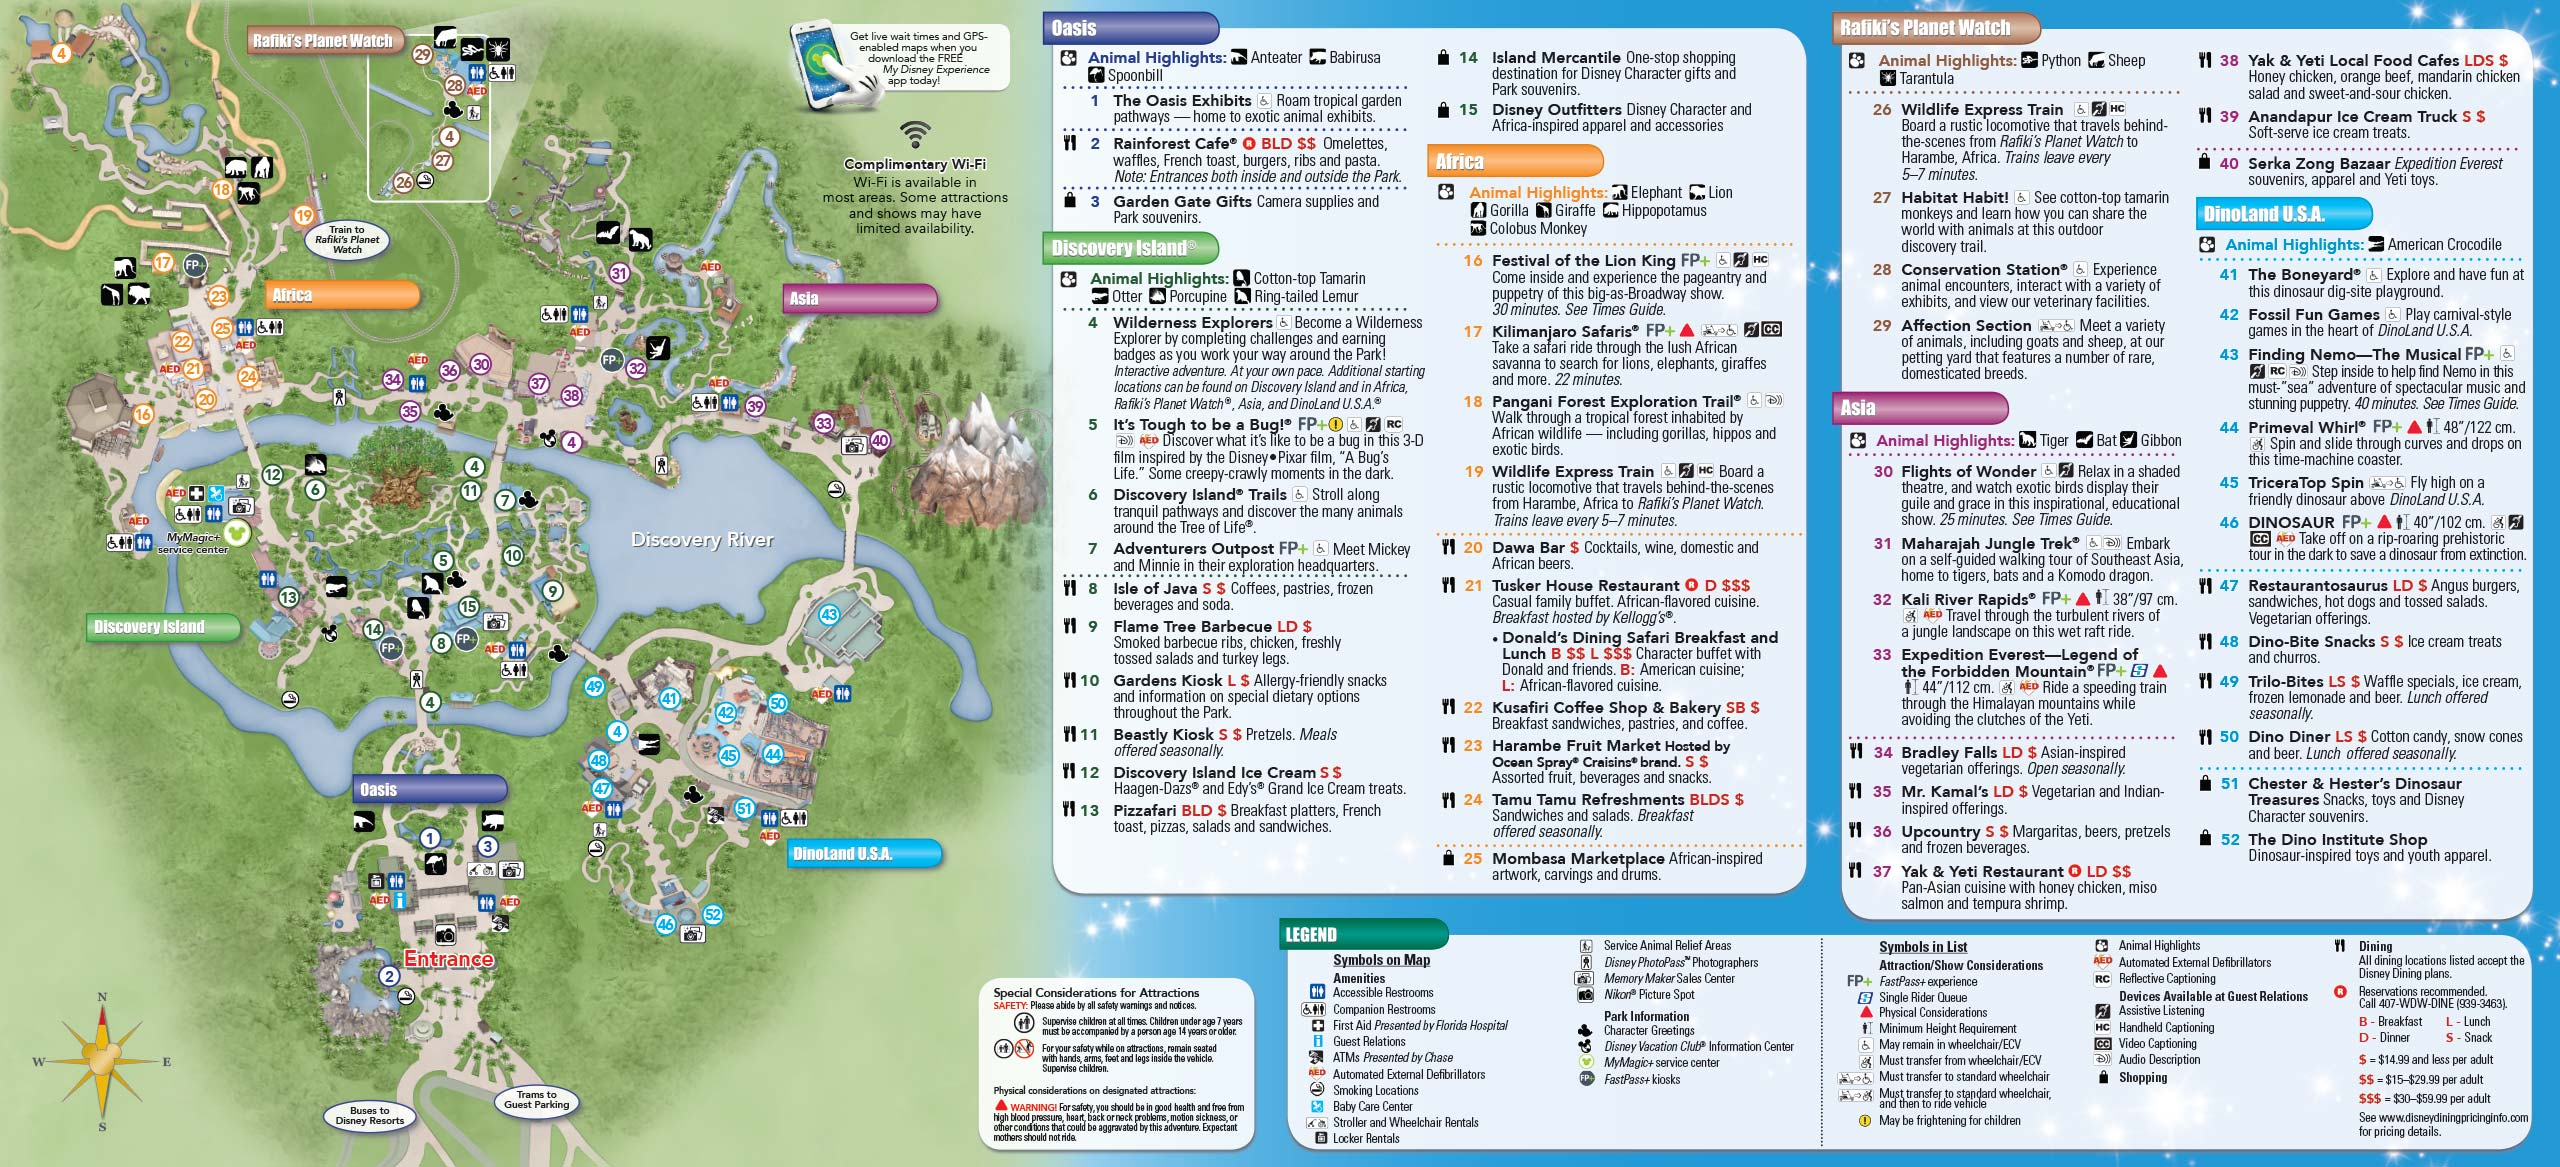 PHOTOS - New guide map for Disney\'s Animal Kingdom includes new ...